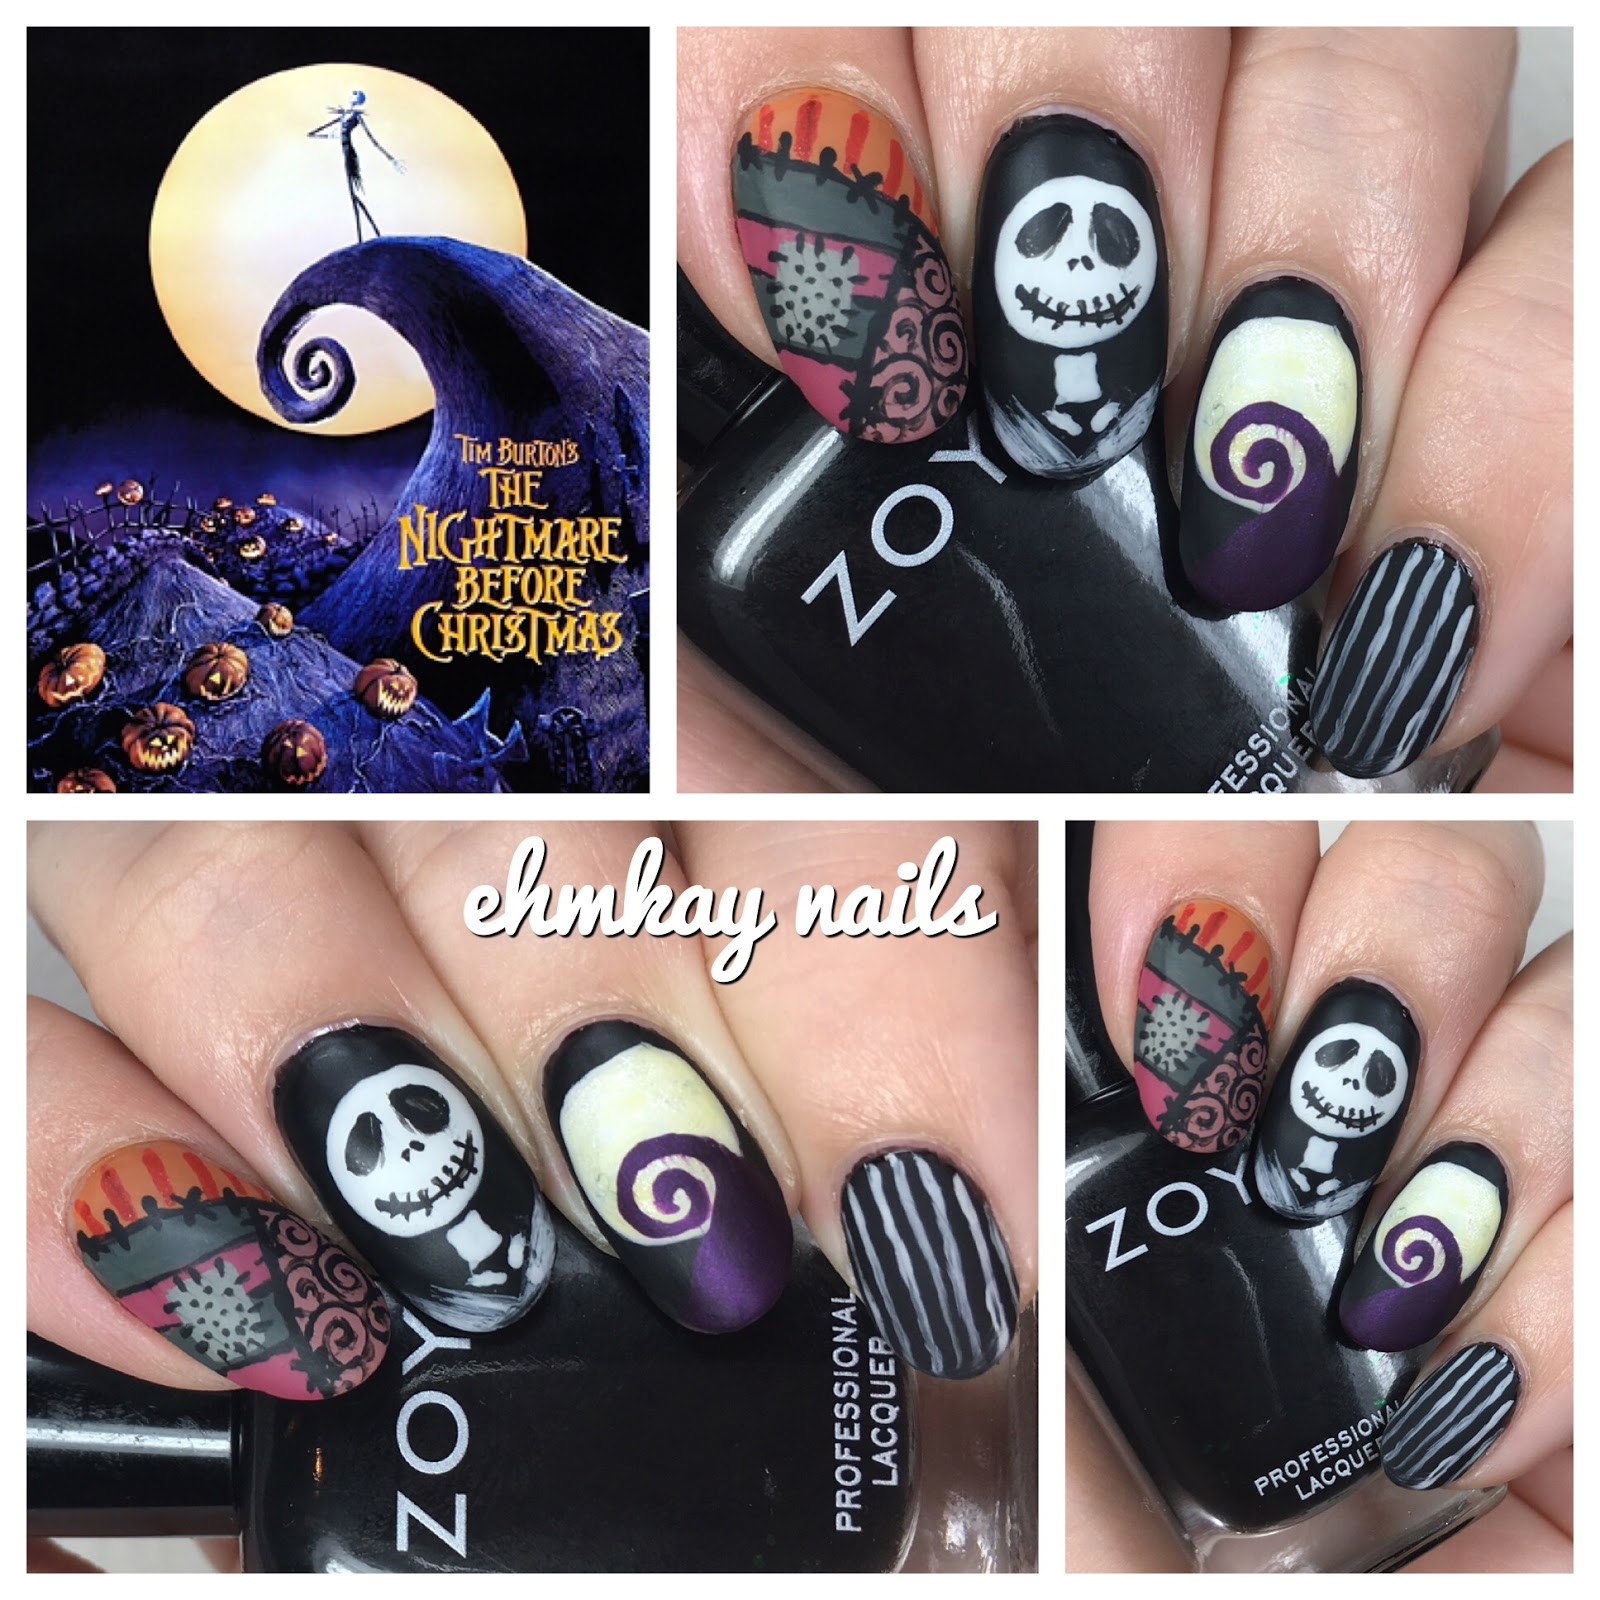 ehmkay nails: 13 Days of Halloween Nail Art: Nightmare ...